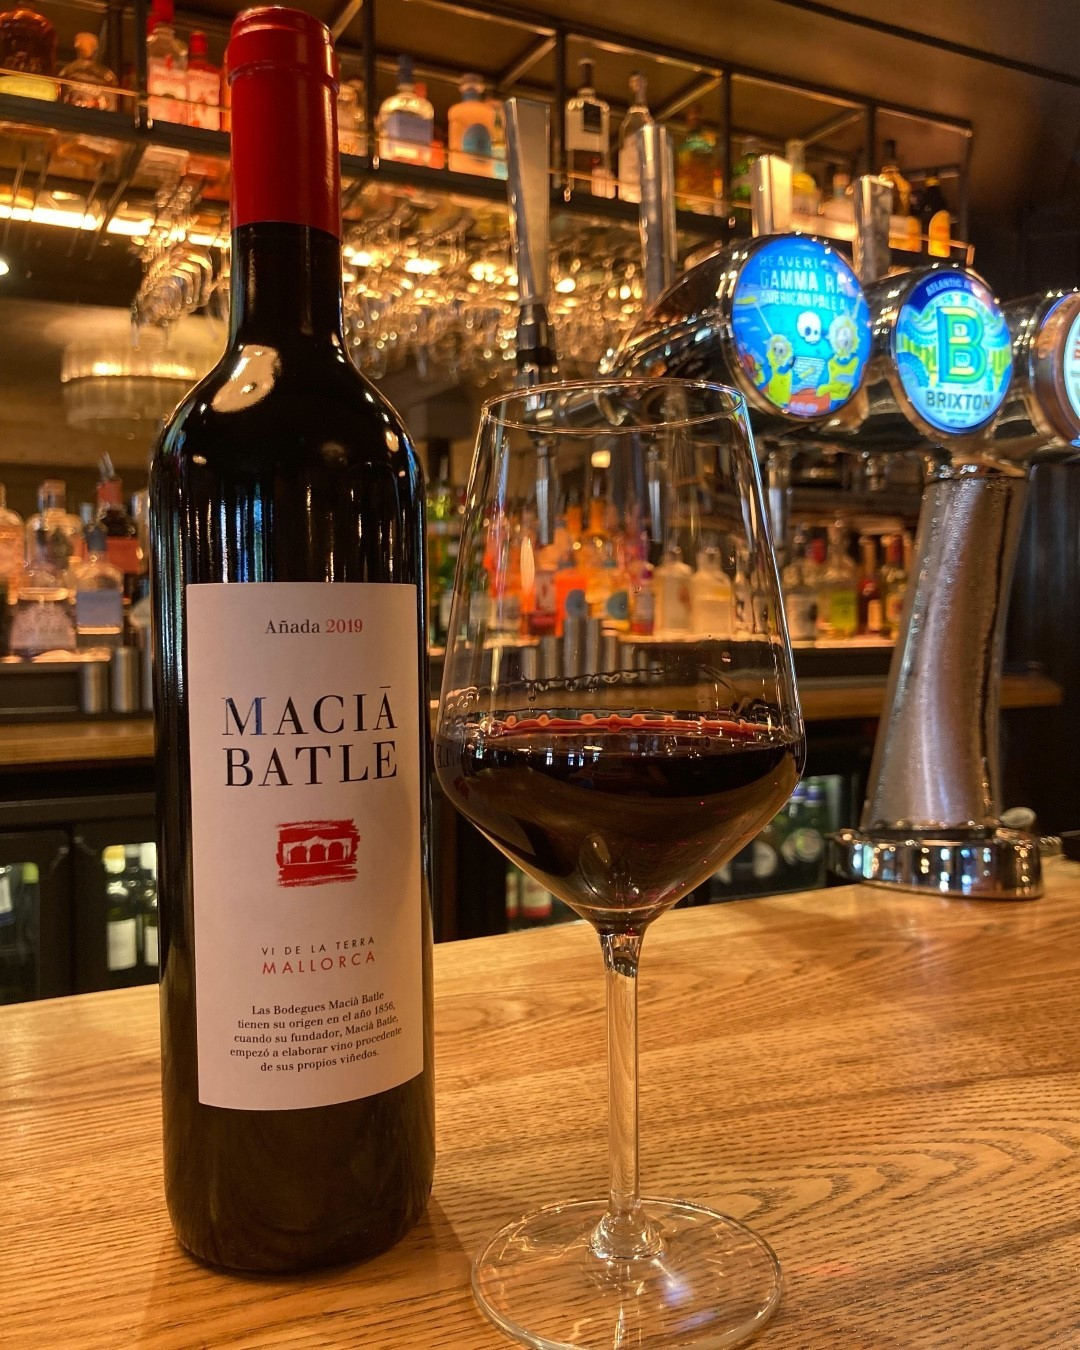 Happy Friday everyone! 🎉  Come and enjoy a glass of our wine of the month: Tinto Anada Macia Batle!   This gorgeous Spanish red gives you a blast of oak, cherries and strawberries and a hint of tobacco in the finish! A perfect pairing with our Iberico Pluma!   #highgate #hampstead #northlondon #pubsoflondon #wine #dinewithus #redwine #redwinelover #redwine🍷 #redwinetime #redwineglass